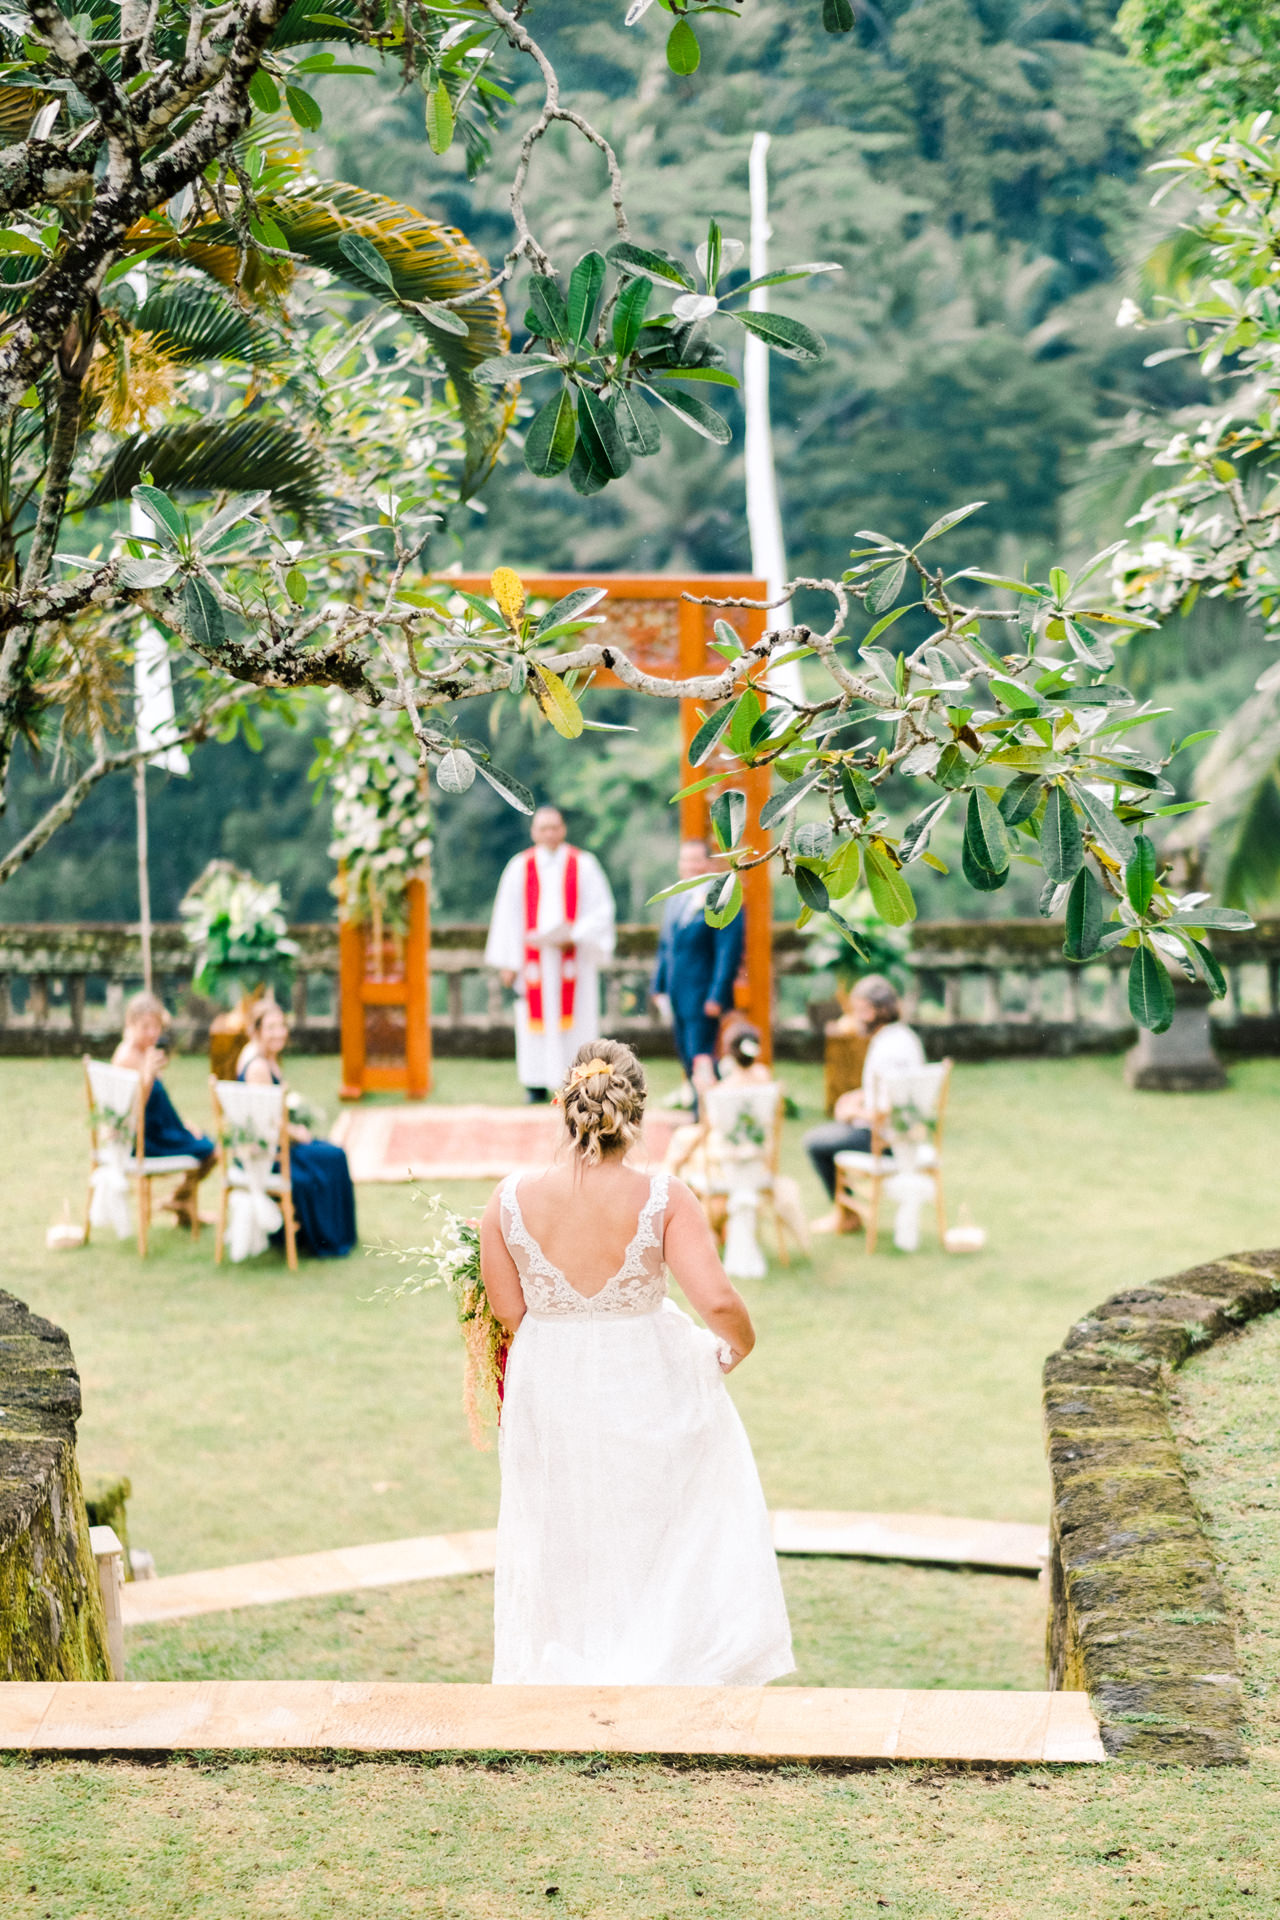 K&F: Bali Wedding at Puri Wulandari Ubud 15